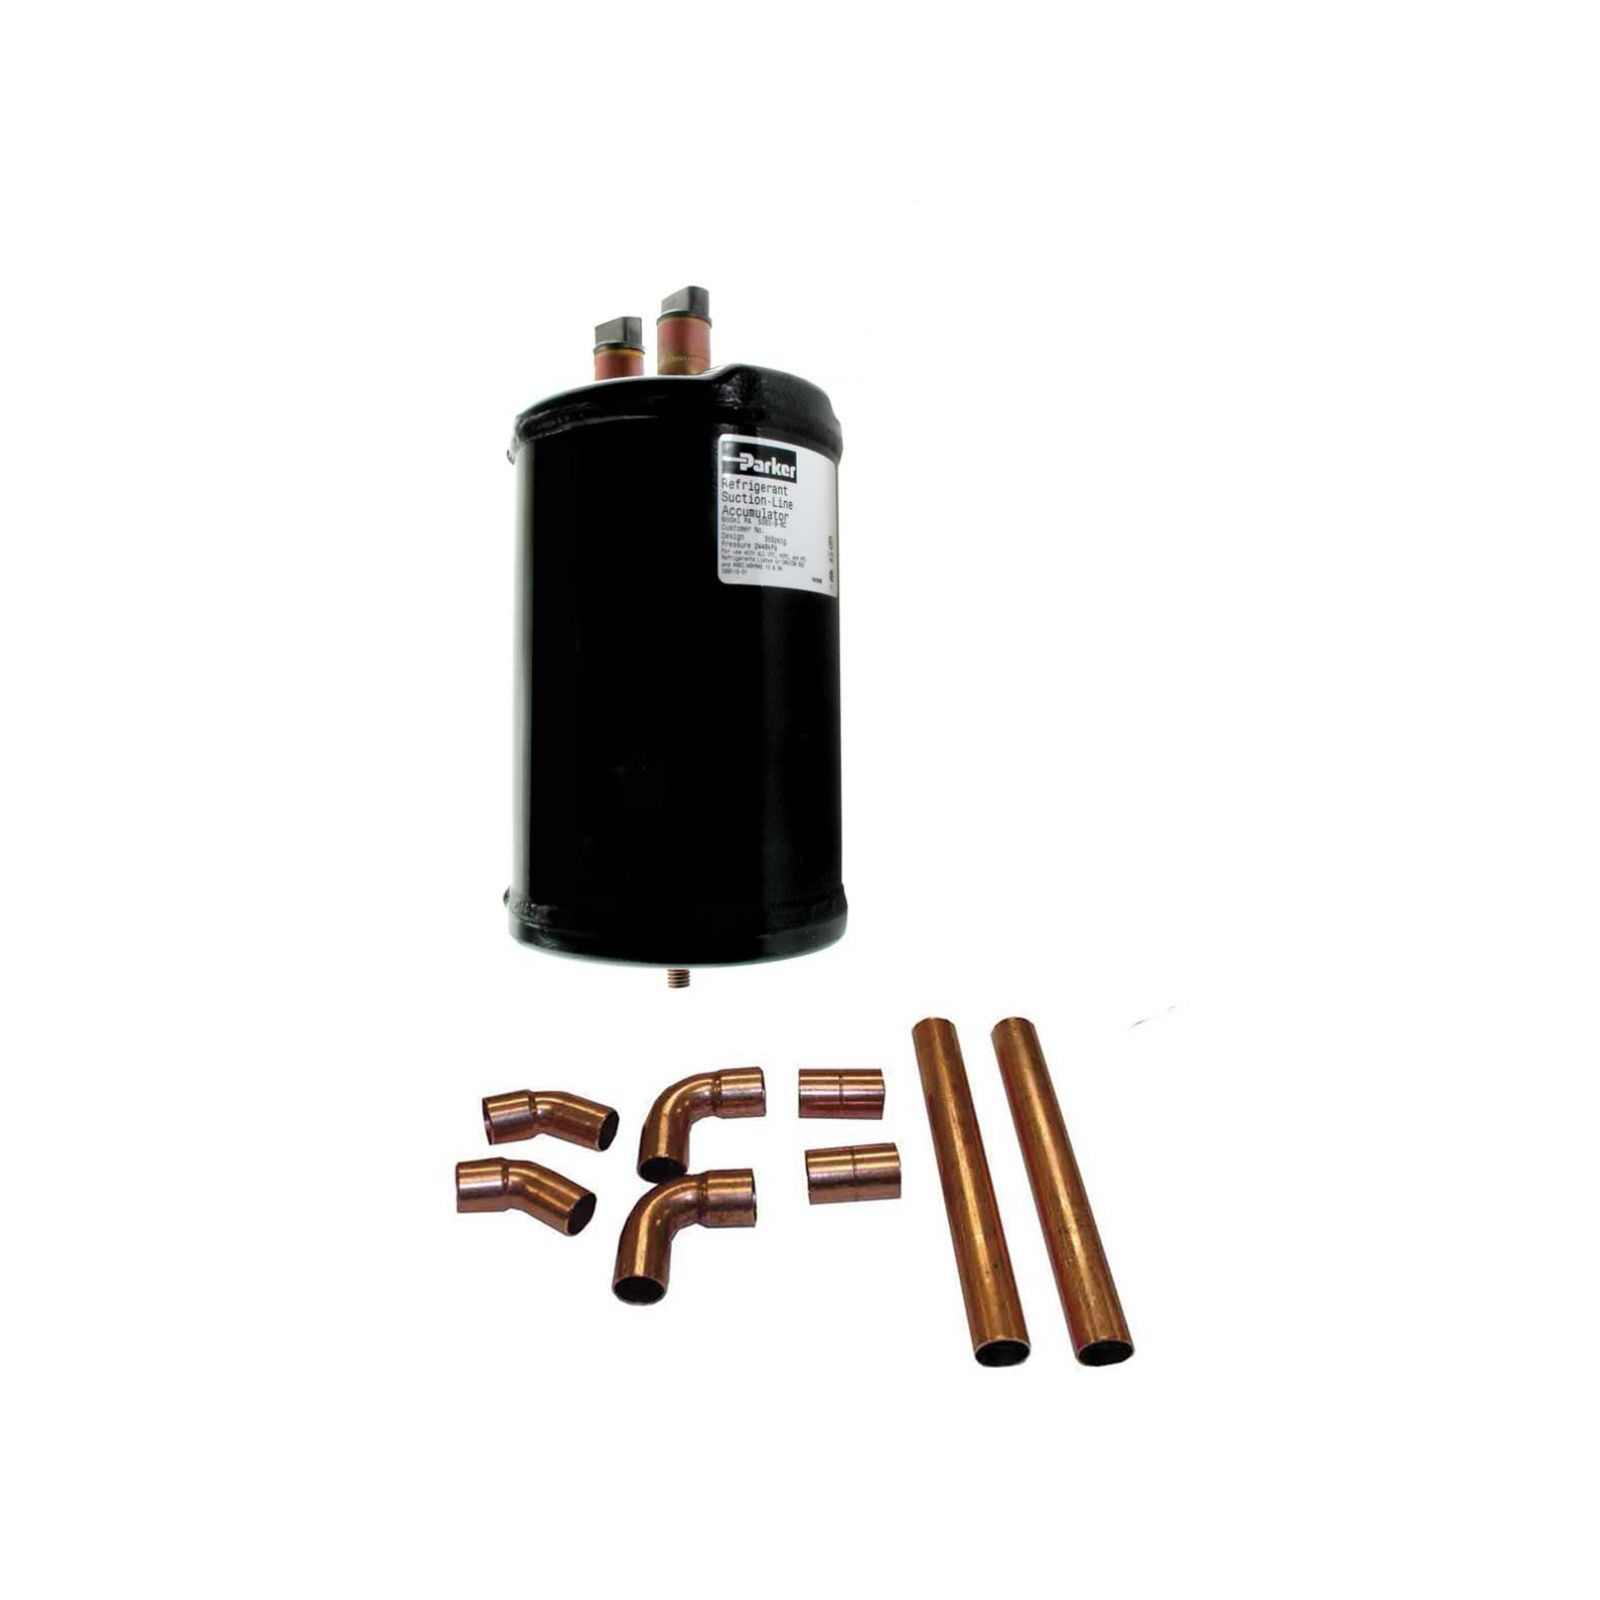 PROTECH 83-22272-93 - Accumulator Kit